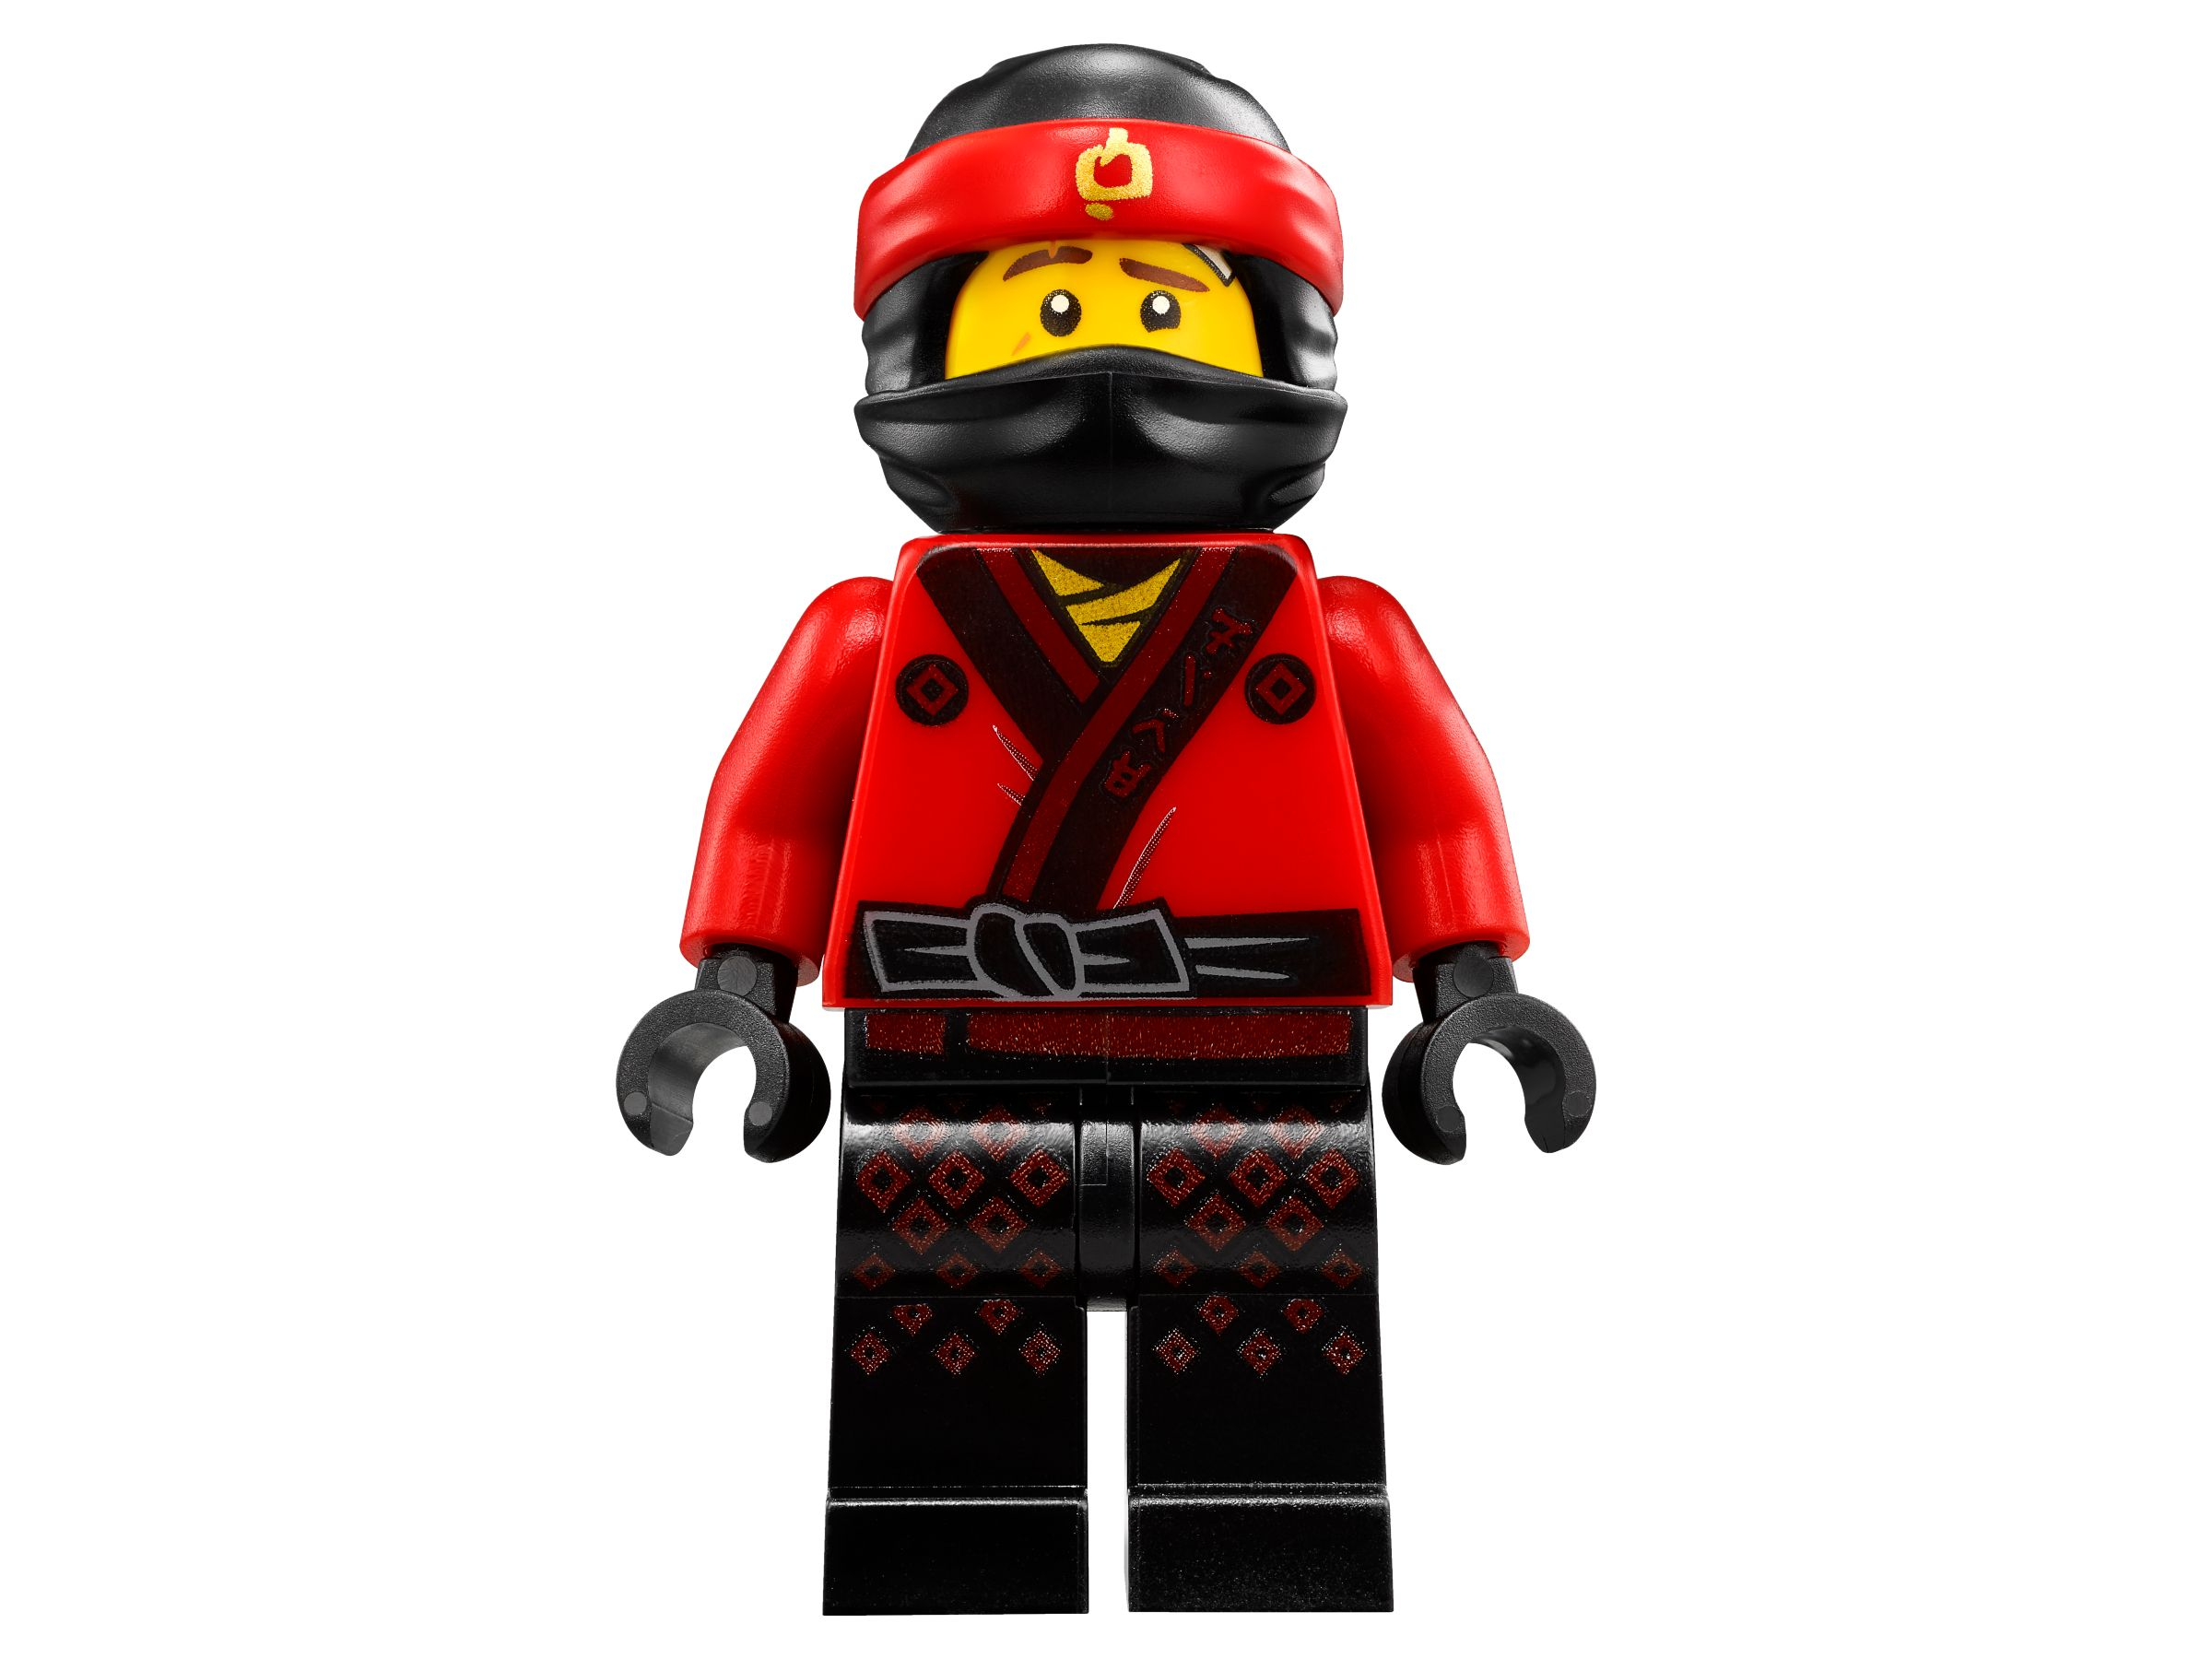 LEGO The LEGO Ninjago Movie 70615 Kai's Feuer-Mech LEGO_70615_alt7.jpg